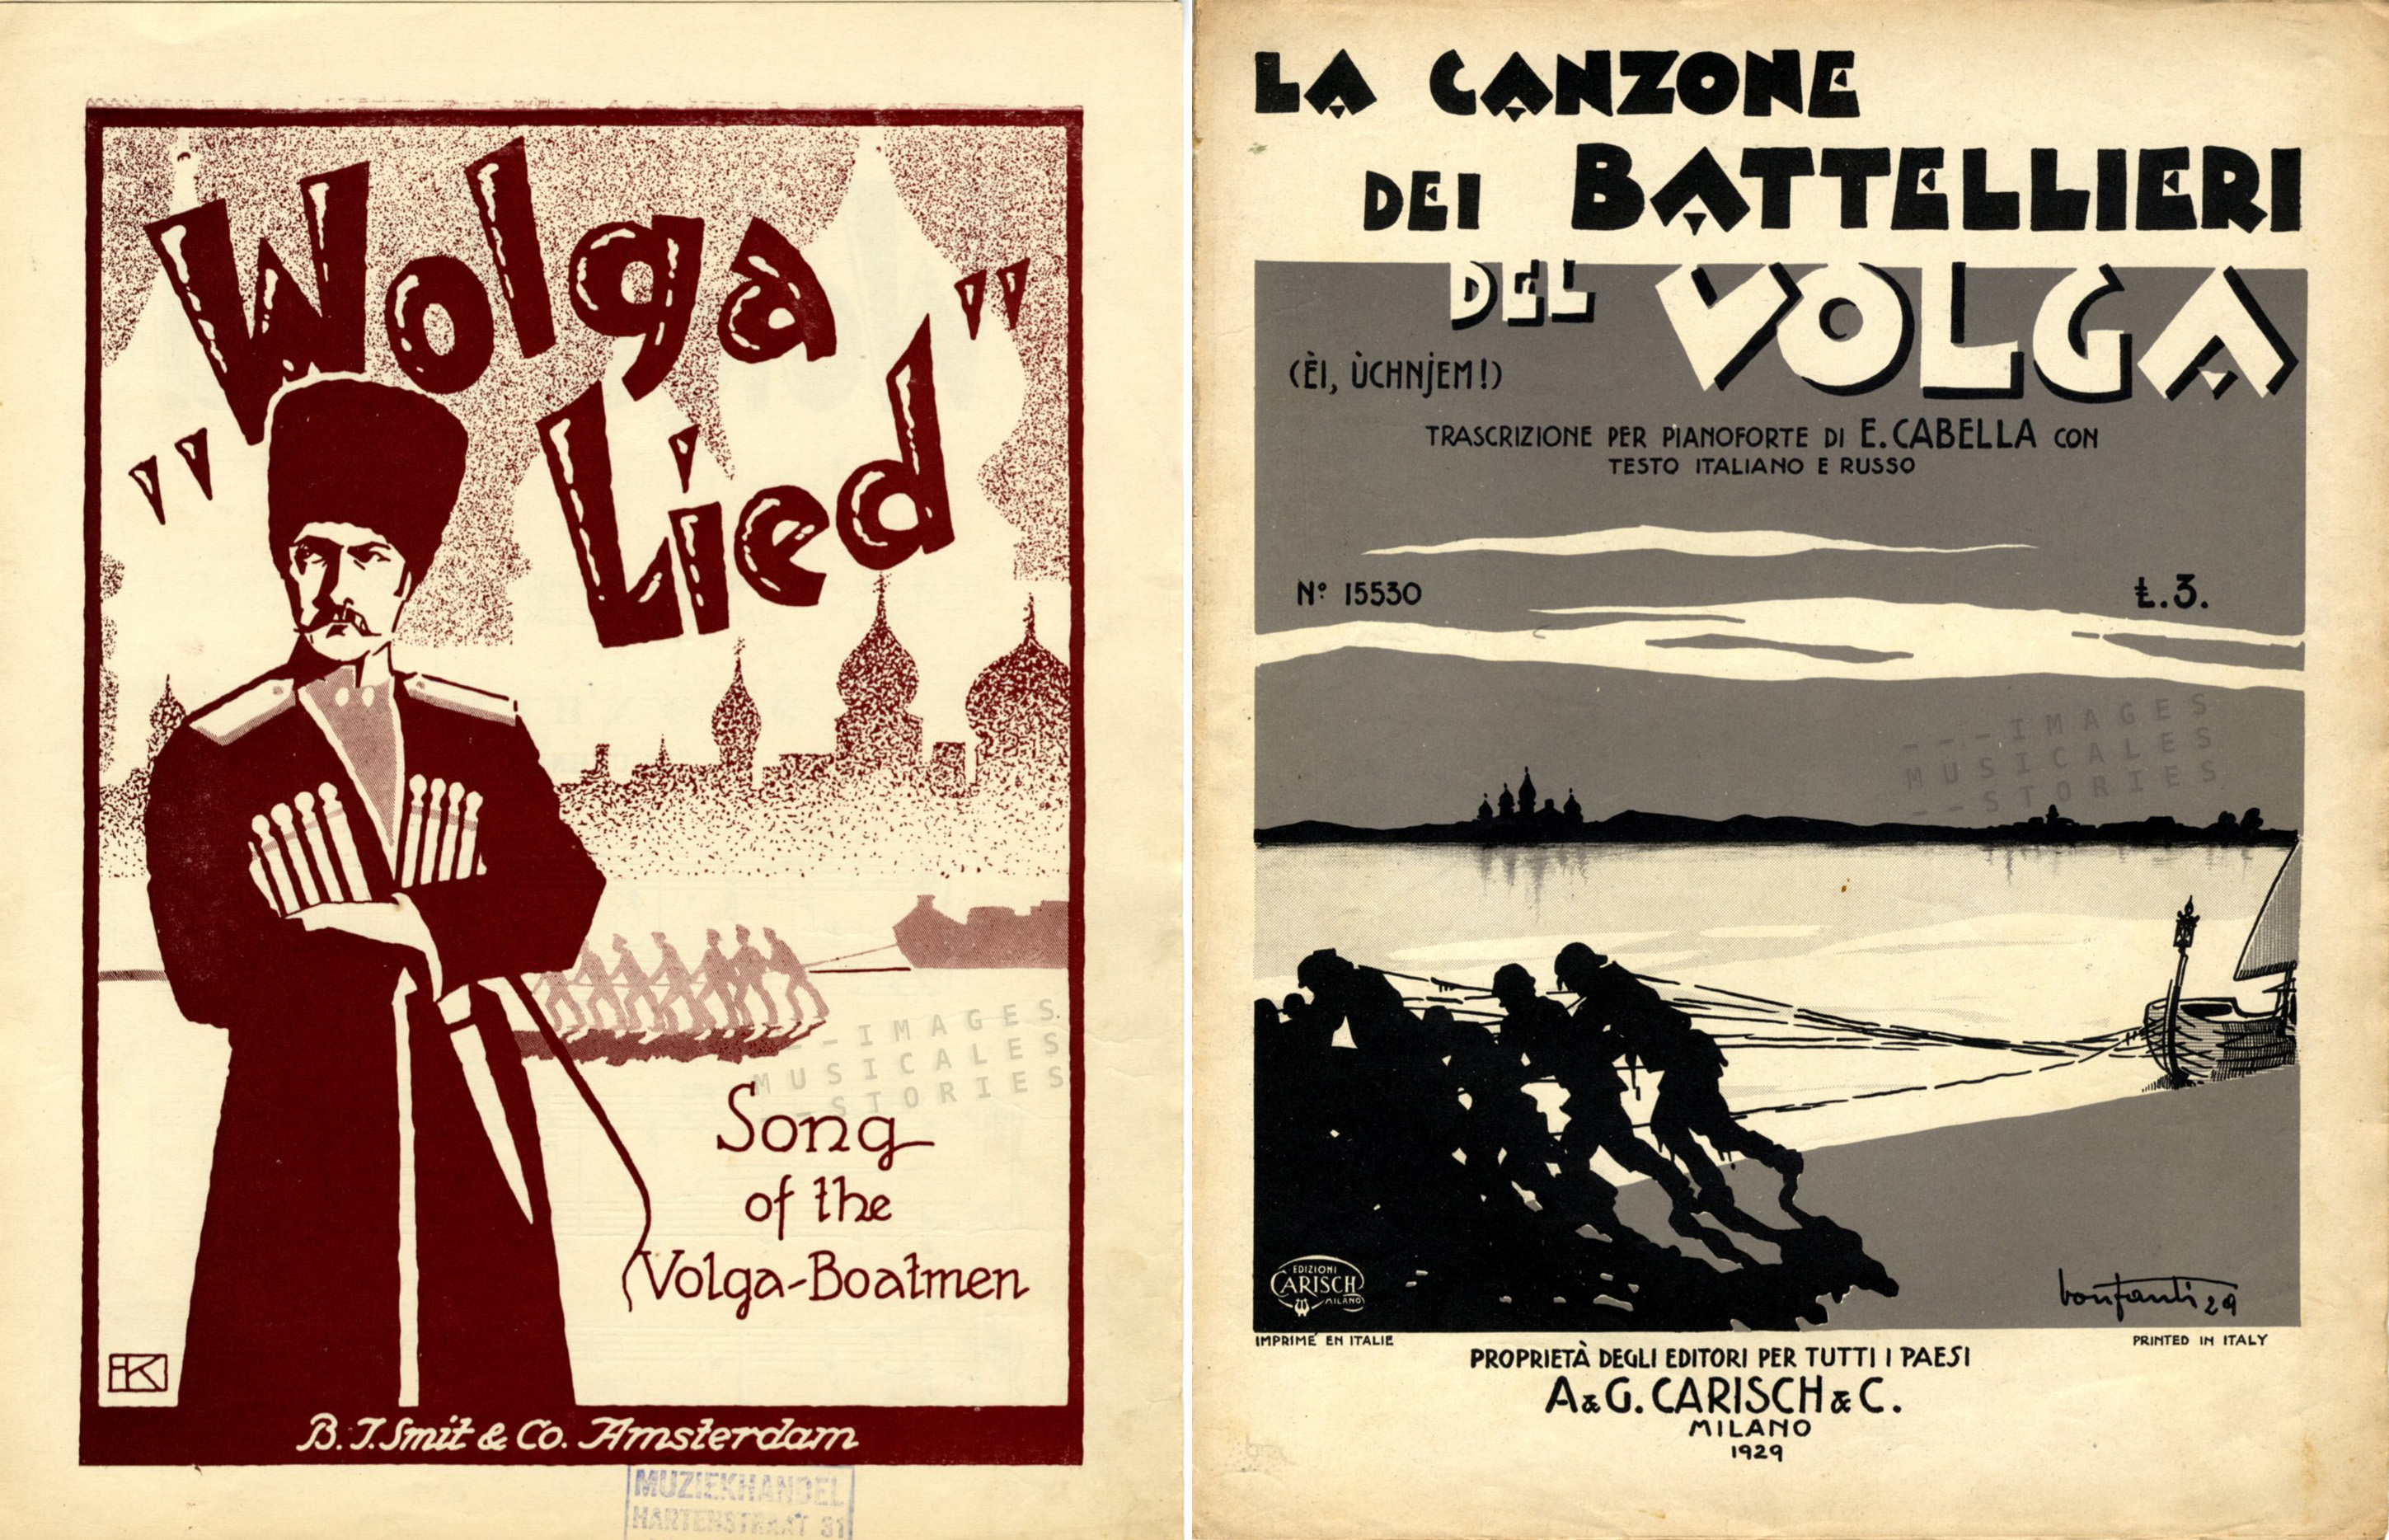 Two-Sheet-Music covers: Left: 'Wolga Lied' published by B. J. Smit & Co (Amsterdam, s.d.) illustration signed F.K. Right: 'La Canzone dei Batellieri del Volga', published by A. & G. Carisch & C. (Milano, 1929), illustrated by Bonfanti.